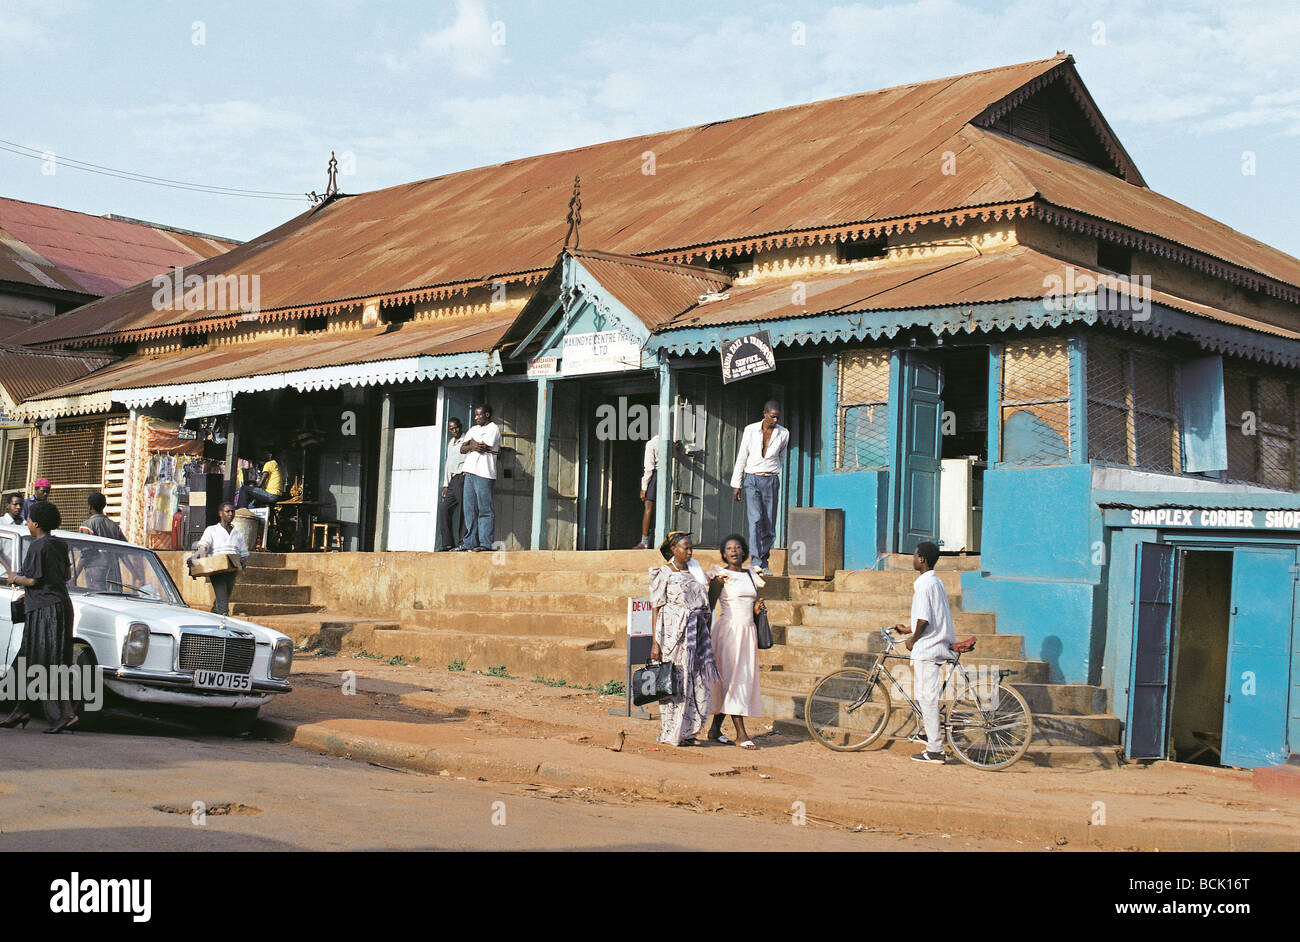 Old fashioned shop near nakasero market kampala uganda east africa stock image